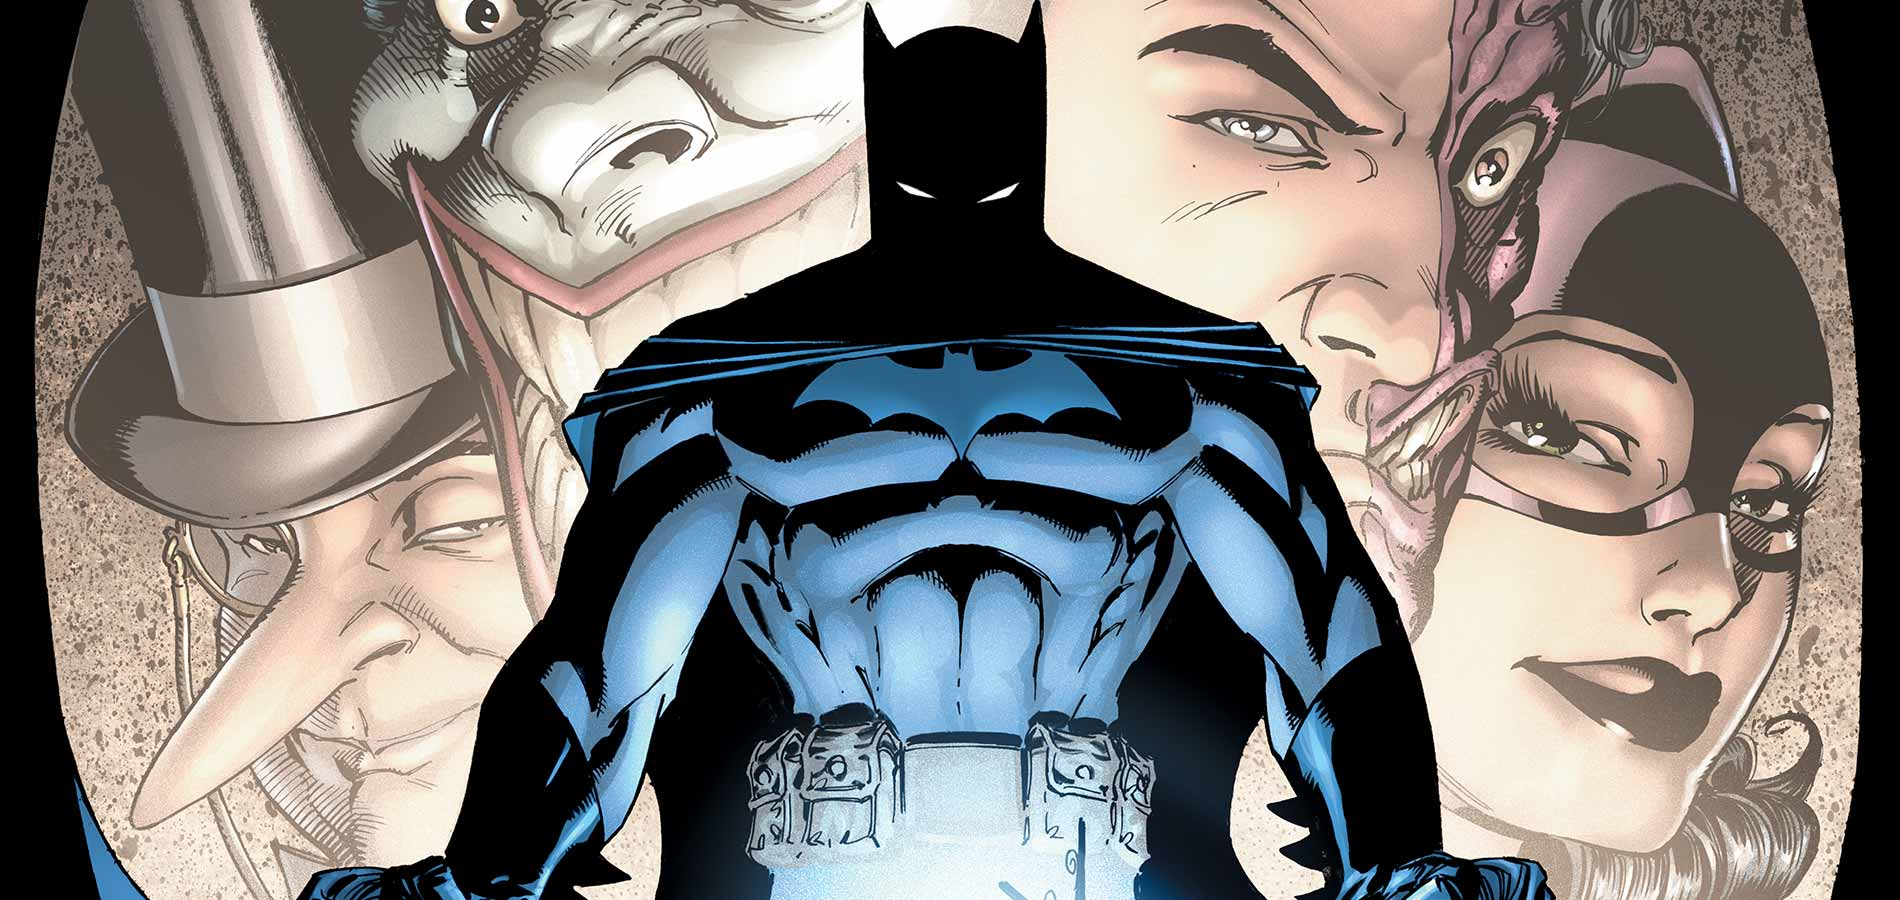 'Whatever Happened to the Caped Crusader?' is a good ending for Batman